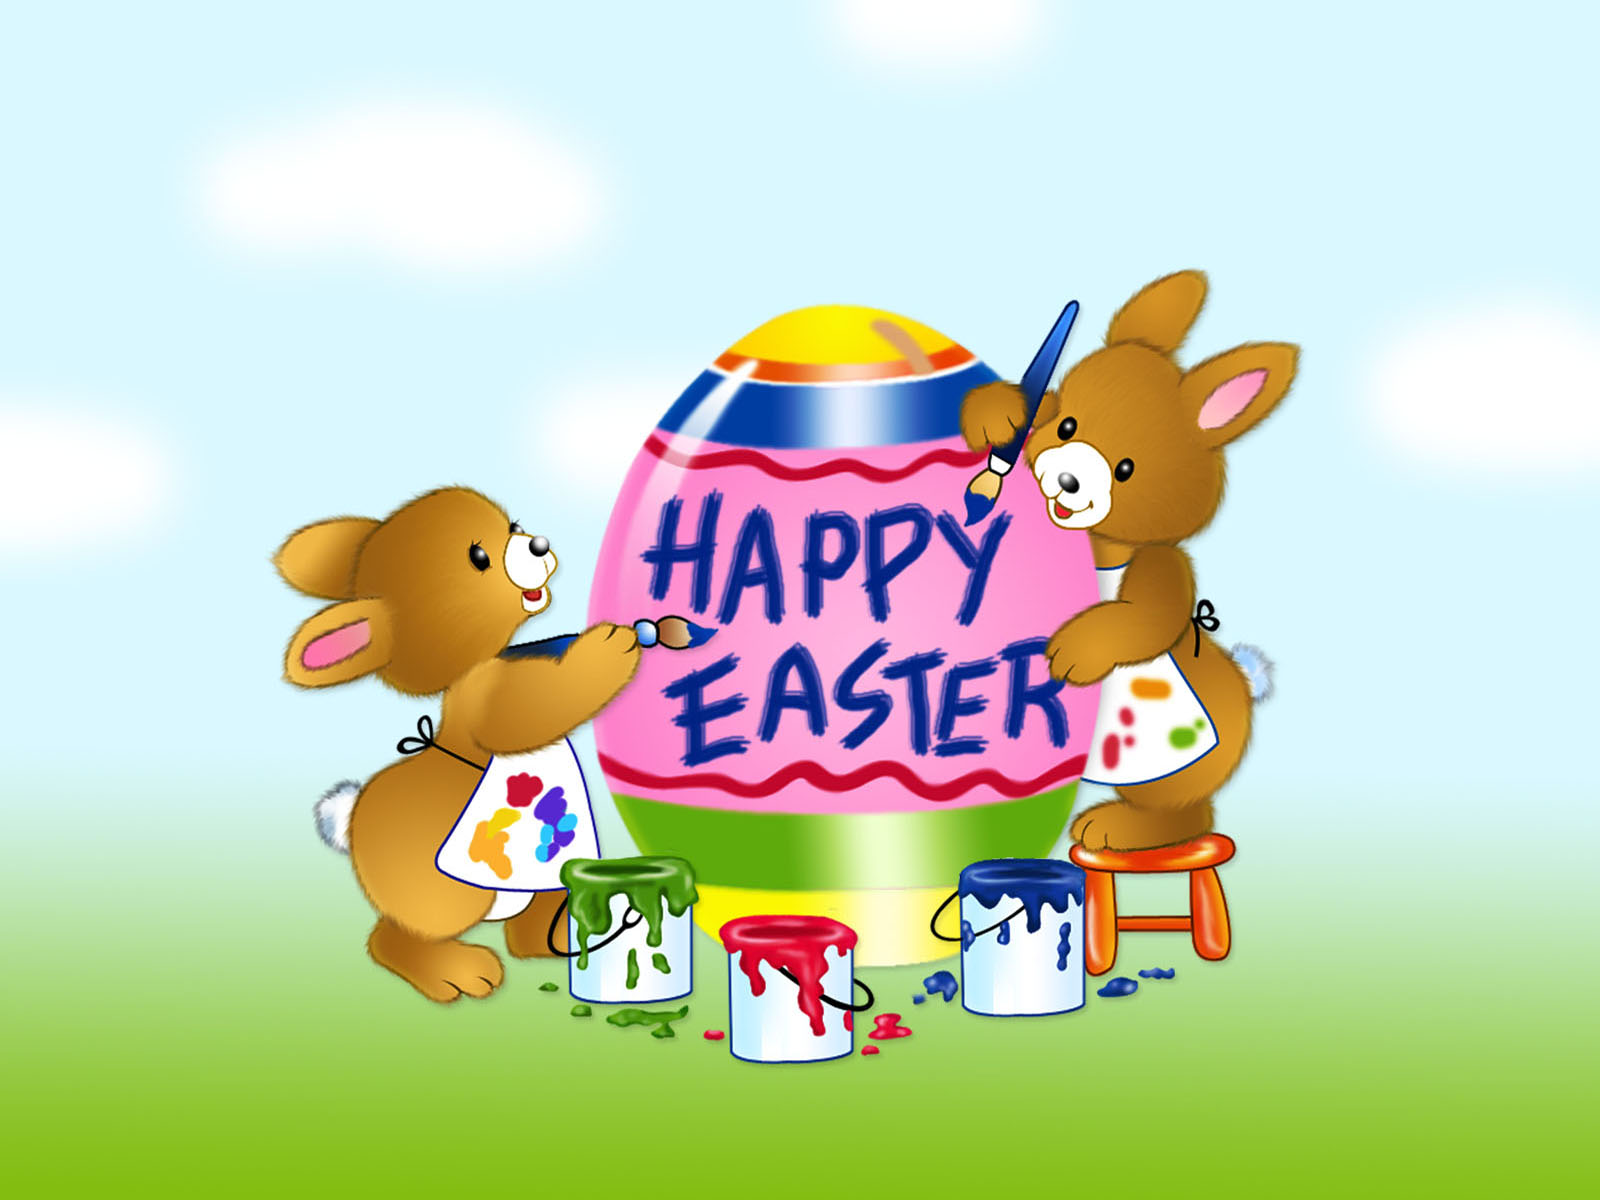 Easter Sunday 2017 HD Image, Pictures, Wallpapers for WhatsApp & FB.